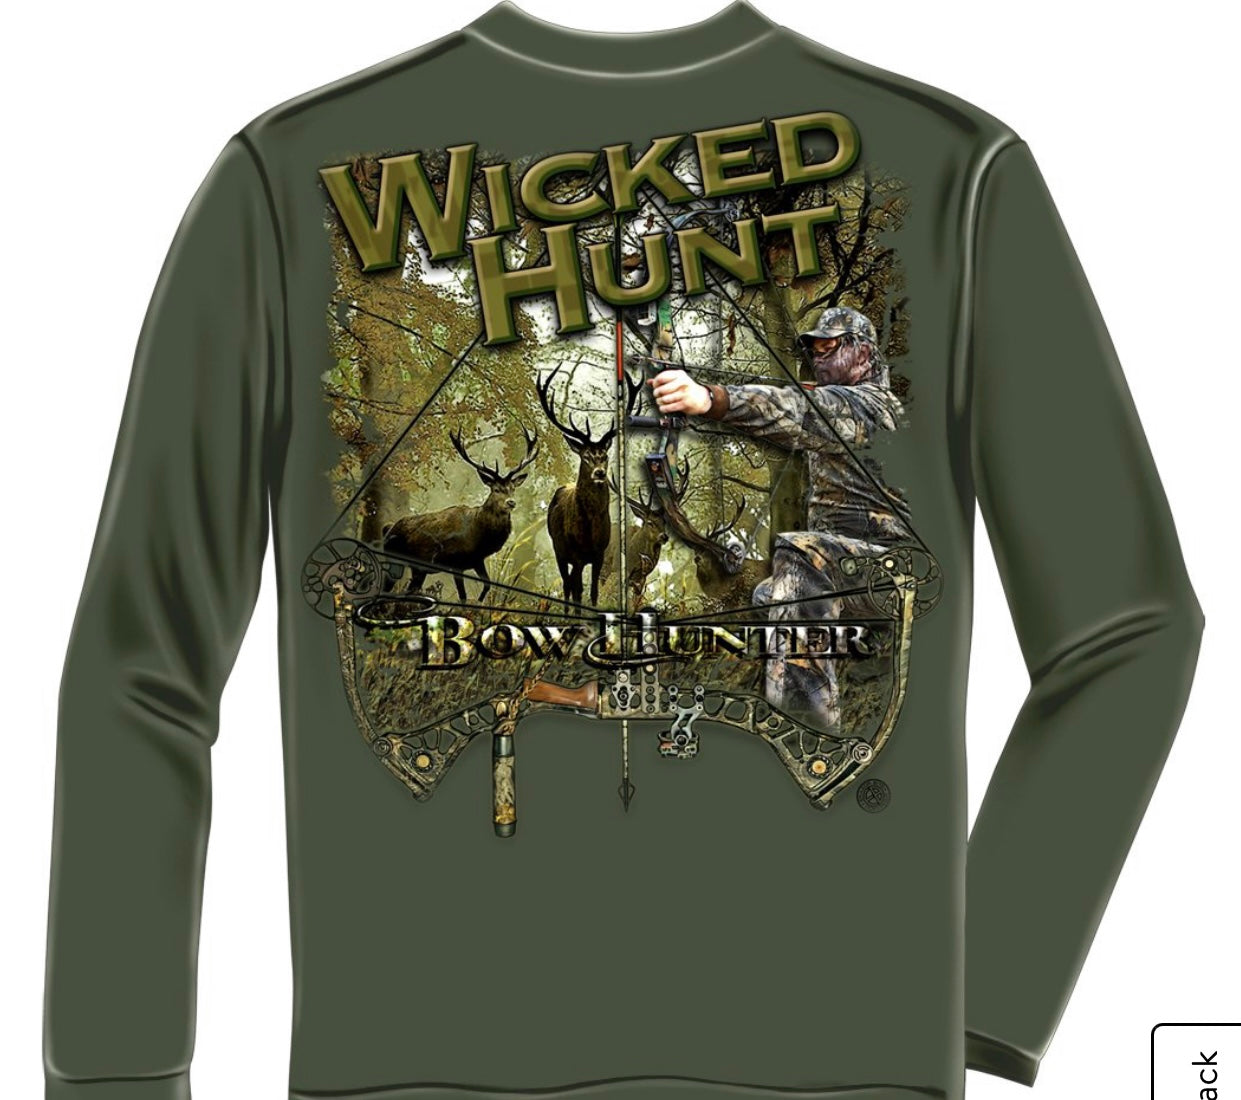 WICKED HUNT BOW HUNTER - The Wall Kids, Inc.